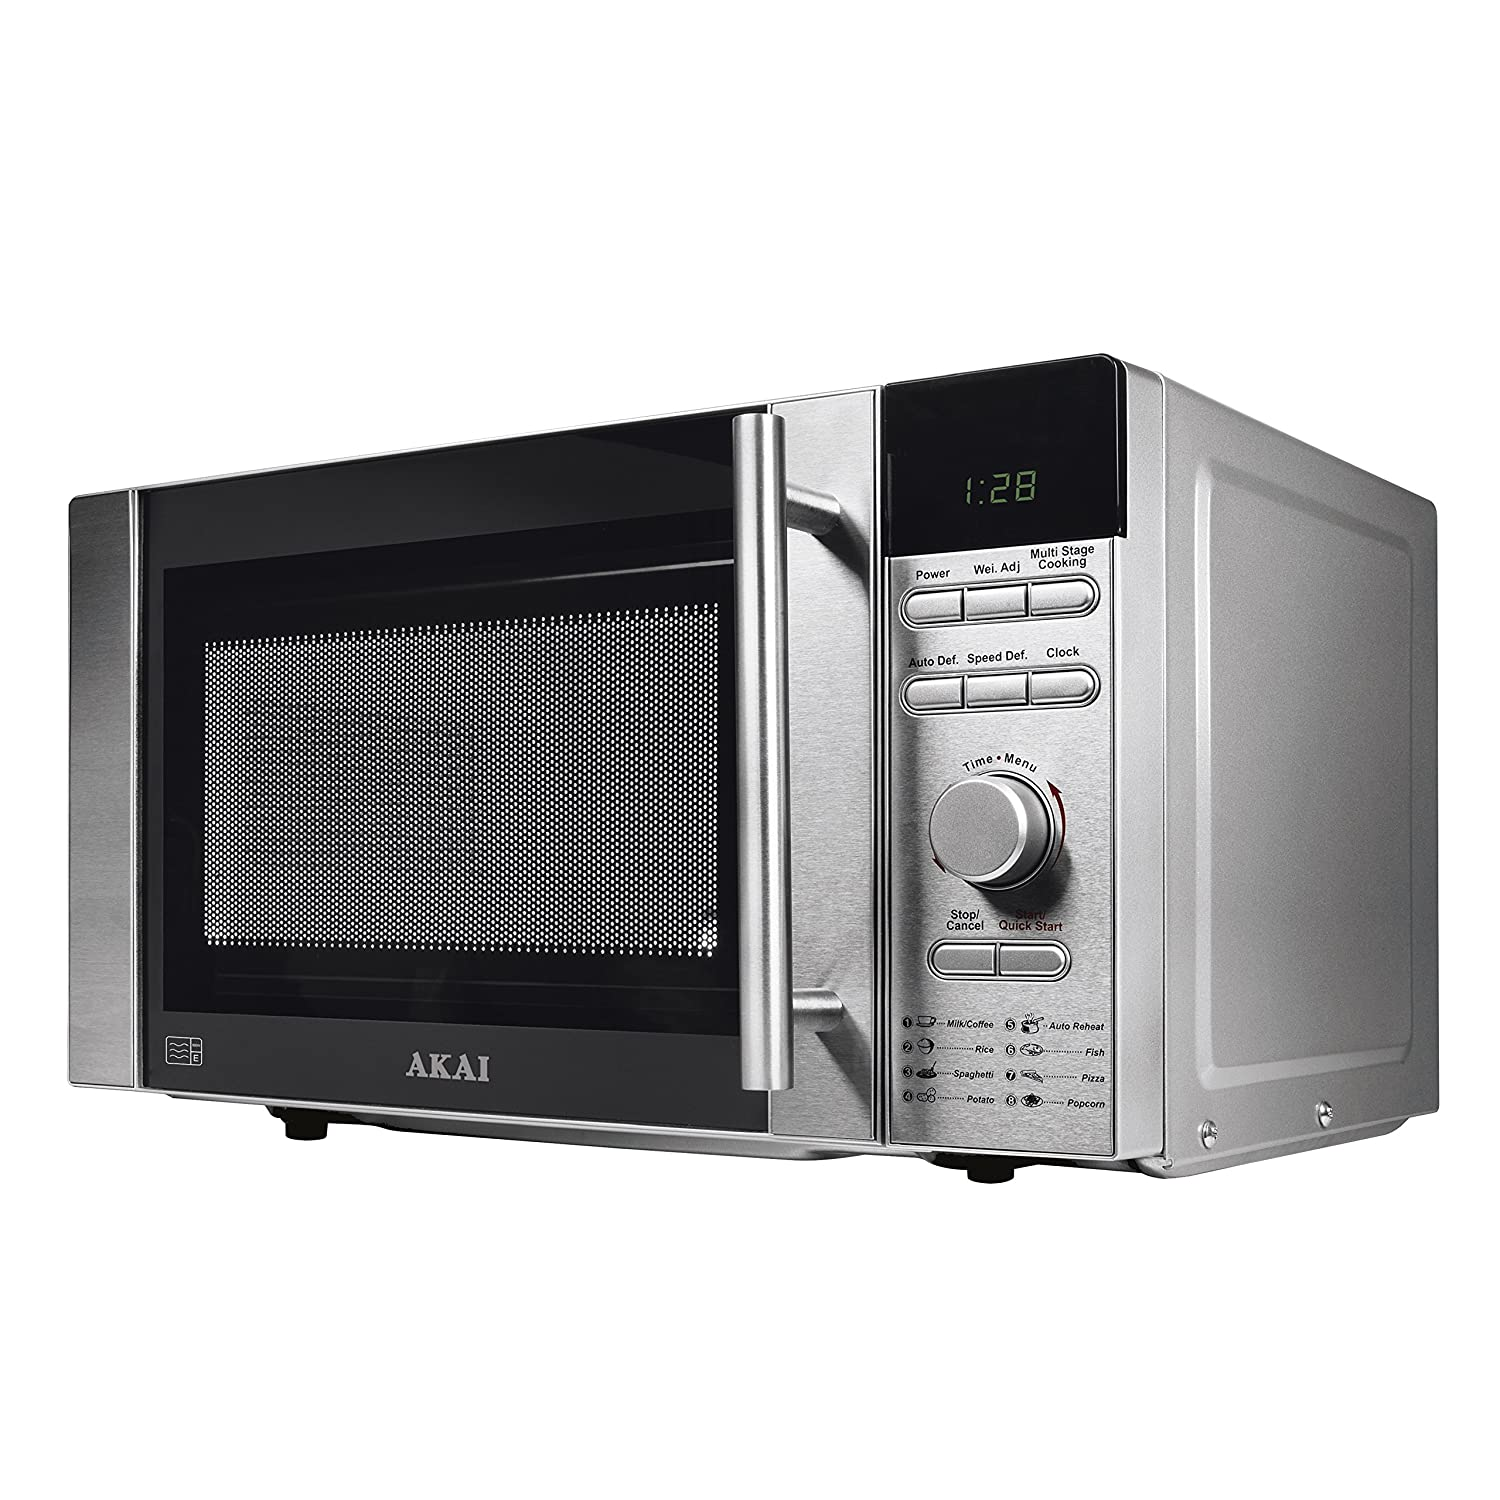 Akai A24003 Digital Solo Microwave with 6 Power Levels, 800 W, 20 Litre, Stainless Steel